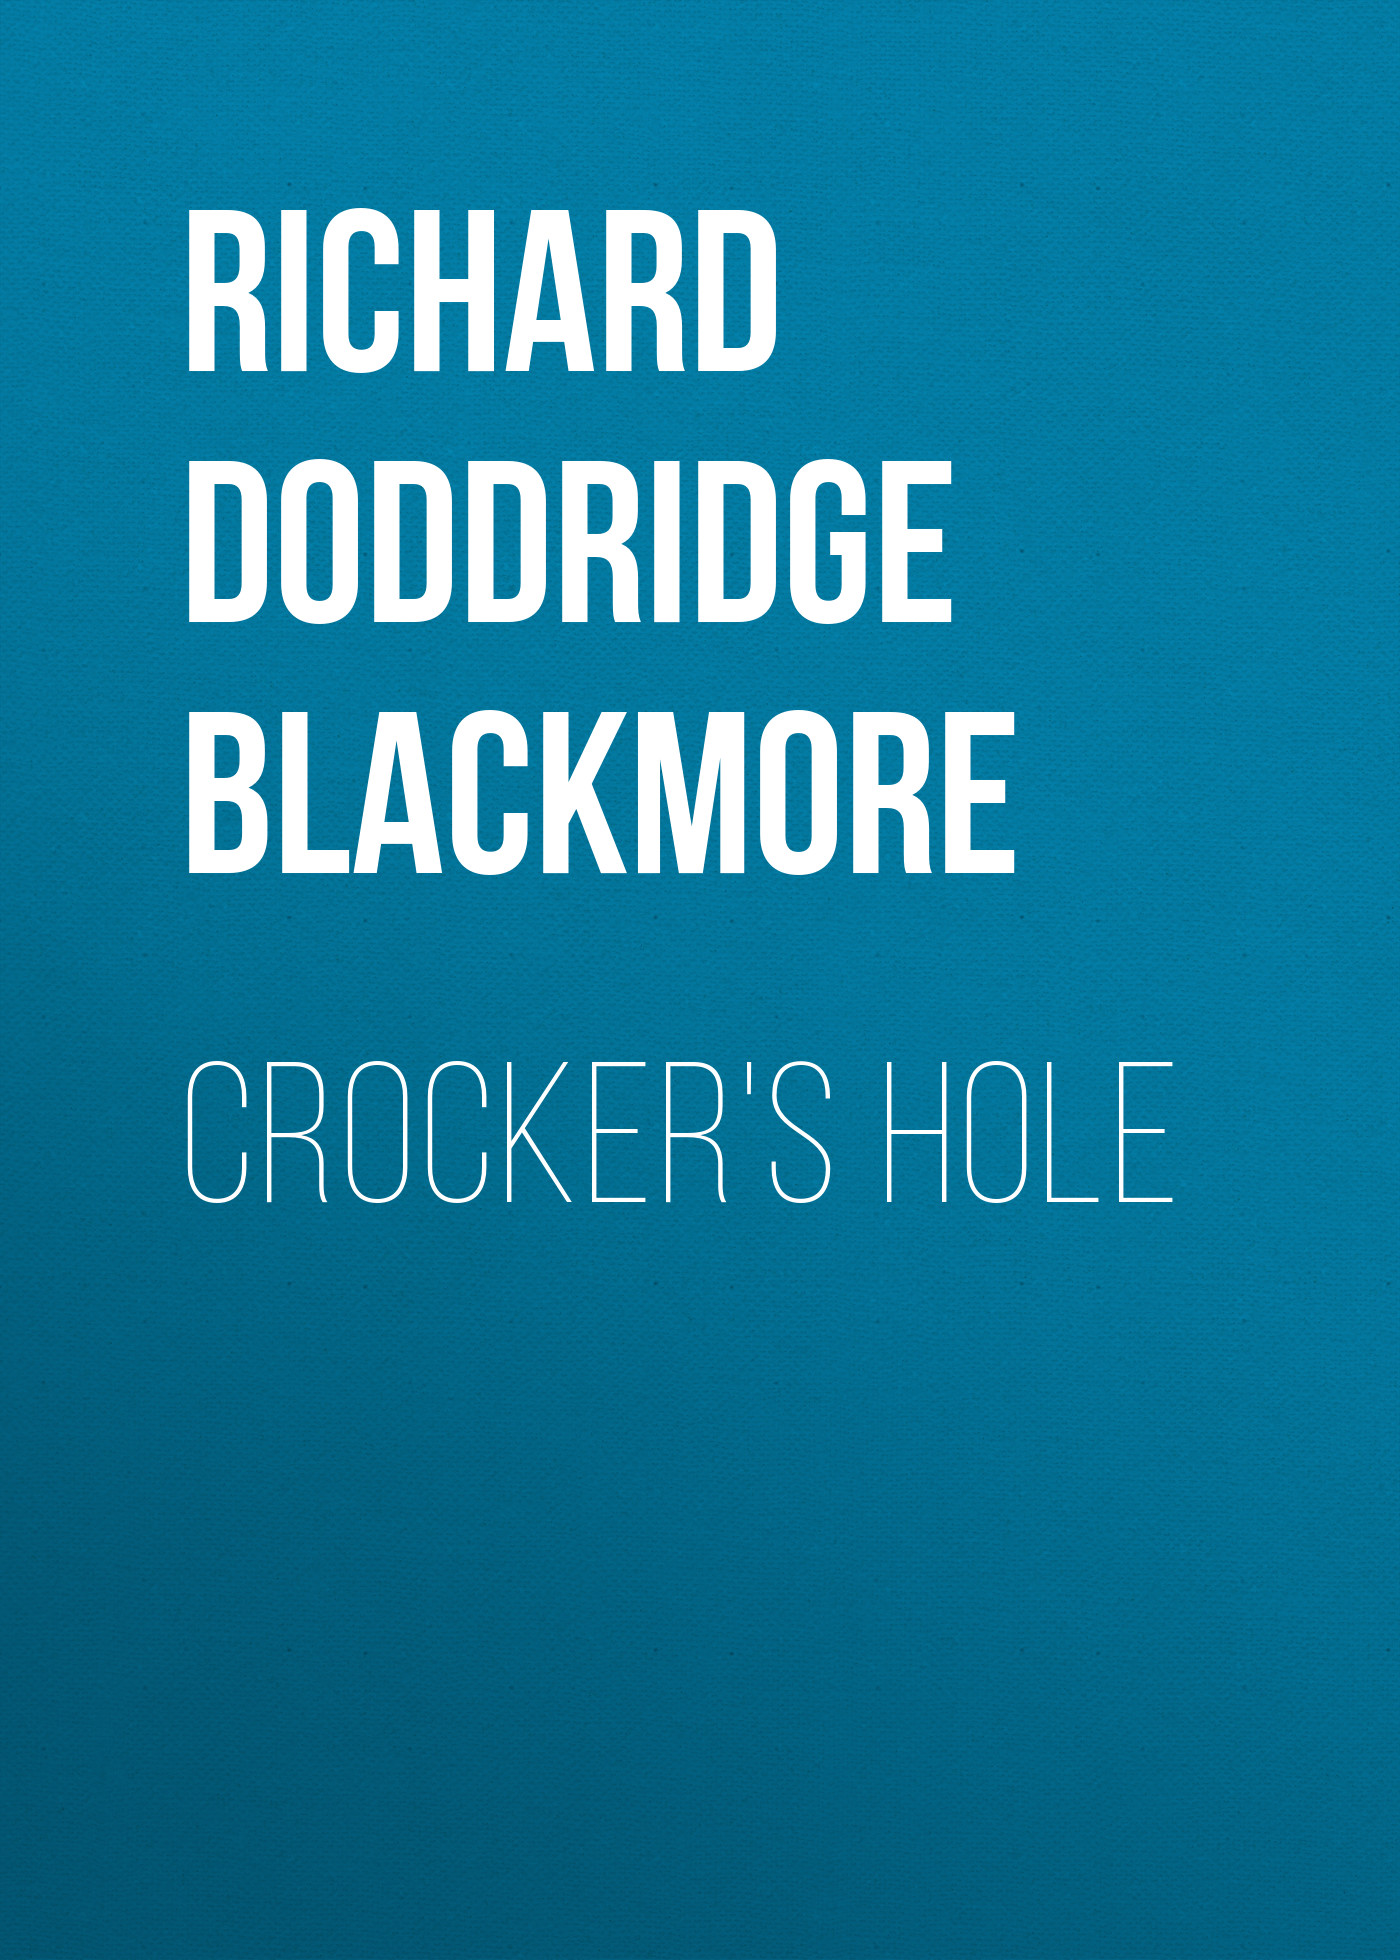 Richard Doddridge Blackmore Crocker's Hole blackmore richard doddridge clara vaughan volume 1 of 3